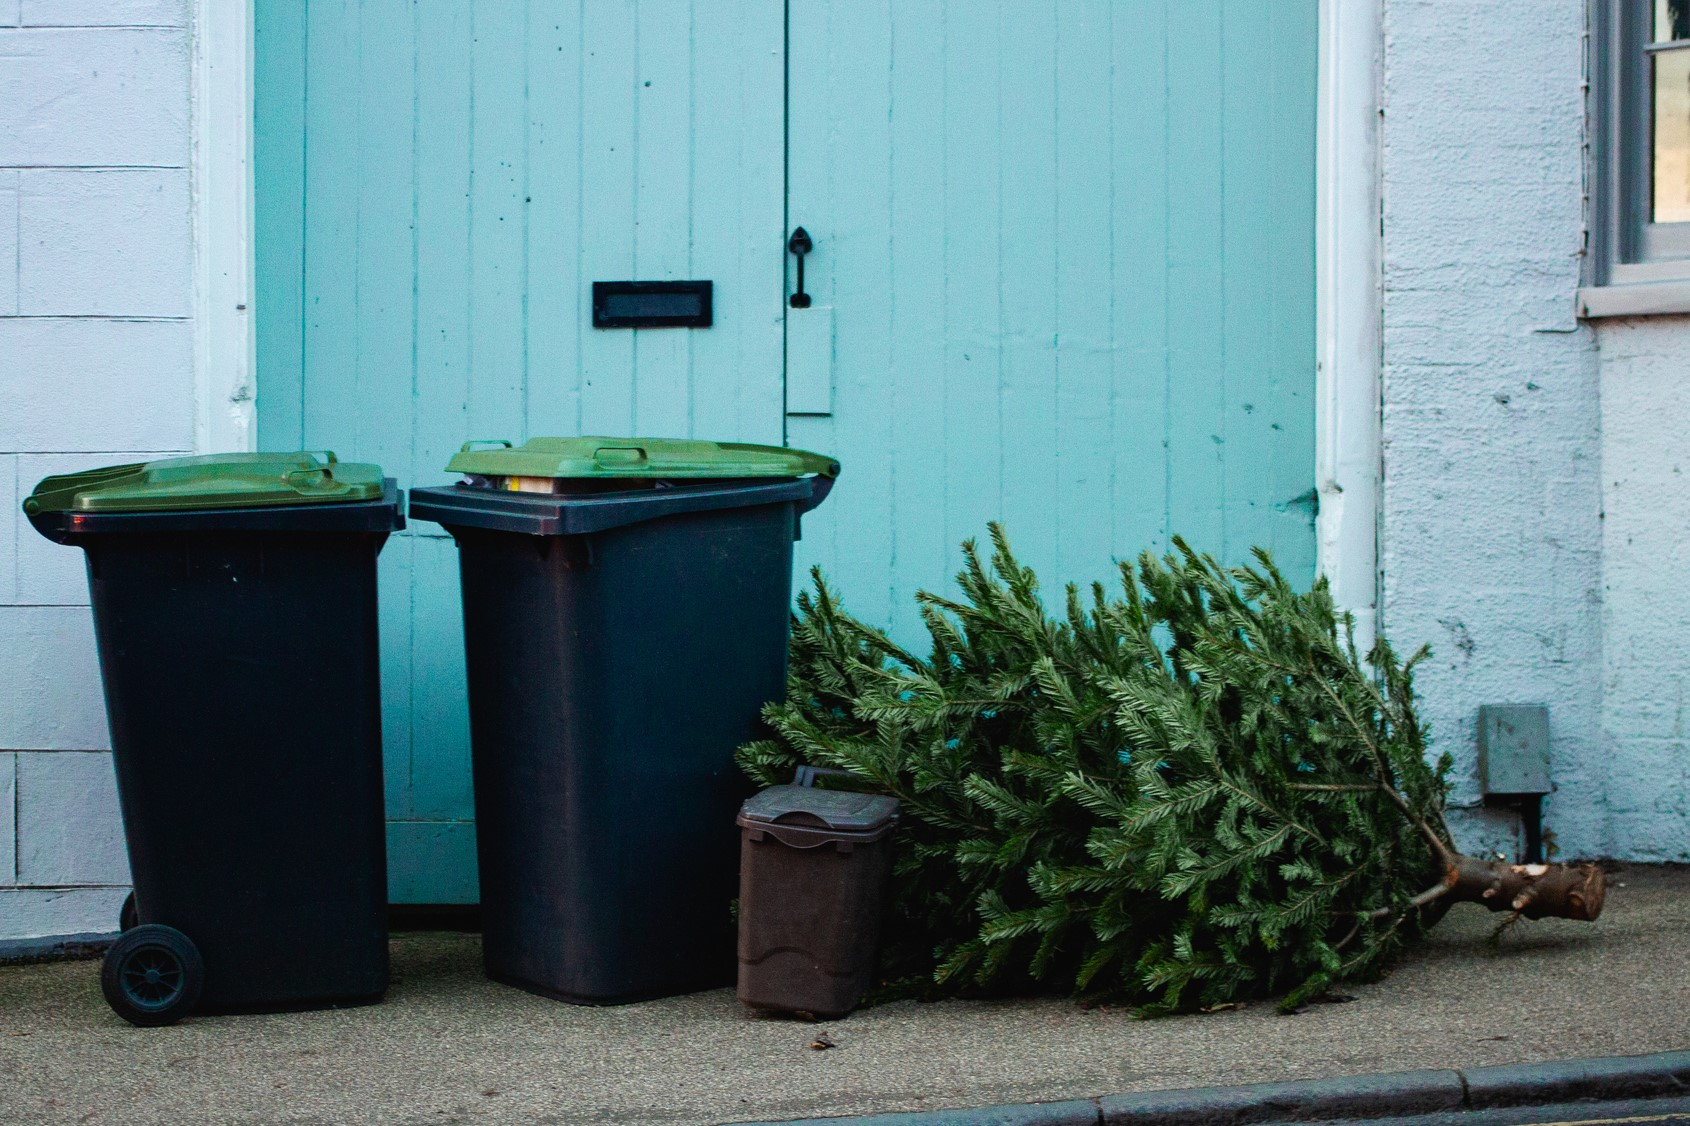 Article image for Trees for goats: A novel way to dispose of your unwanted Christmas tree